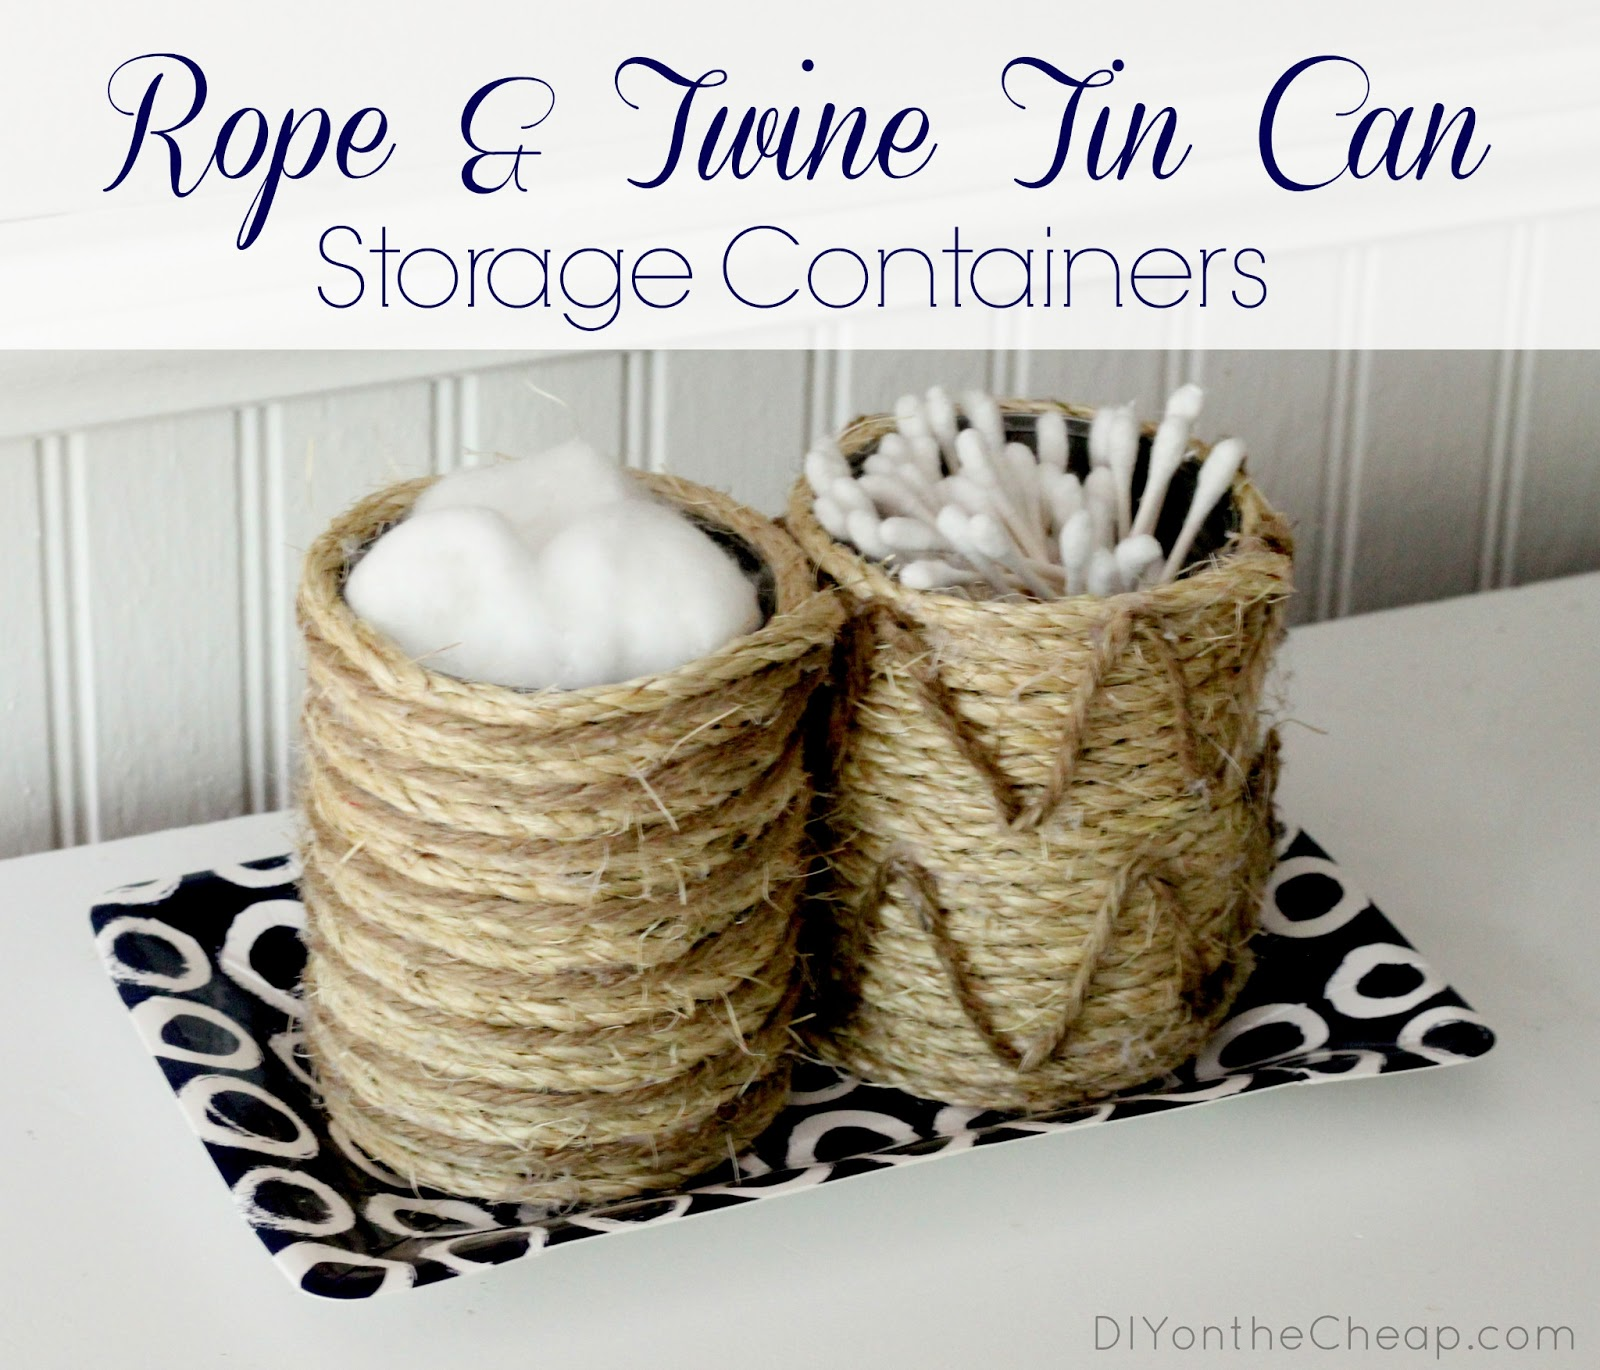 twine crafts ideas rope amp twine tin can storage containers erin spain 3150